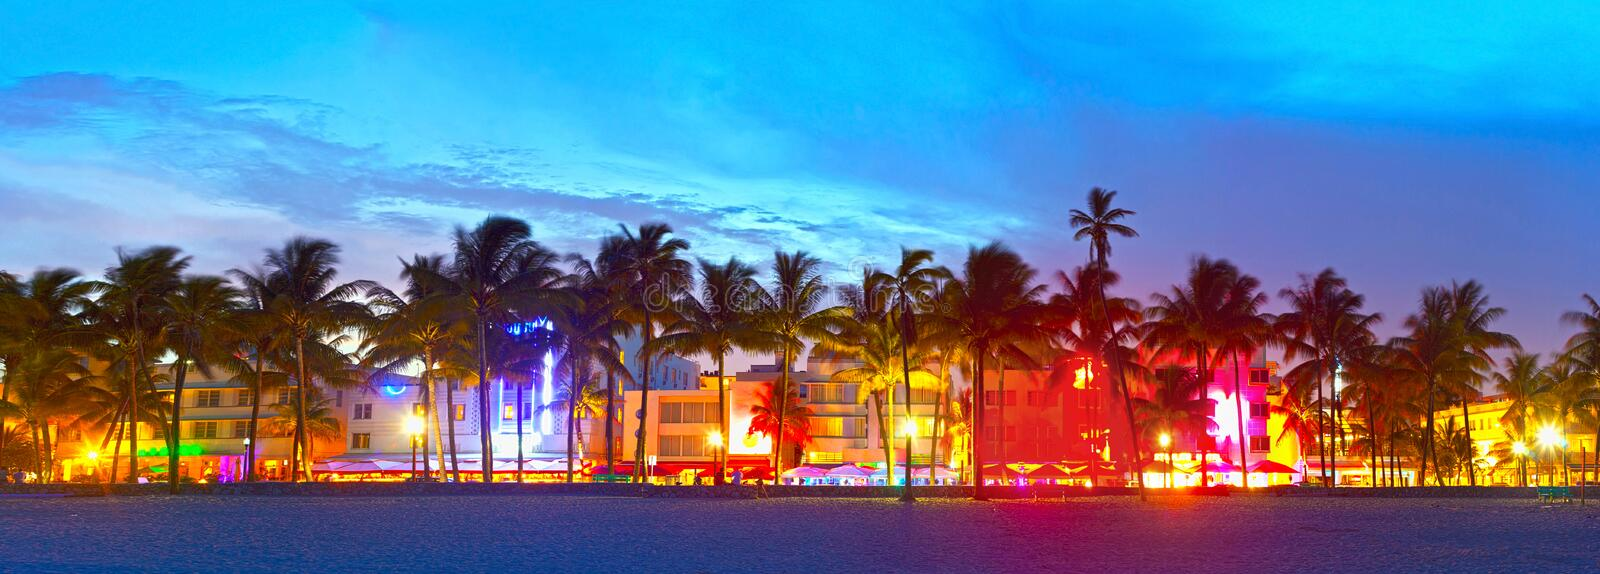 Miami Beach-, Florida-Hotels und Restaurants bei Sonnenuntergang stockbild